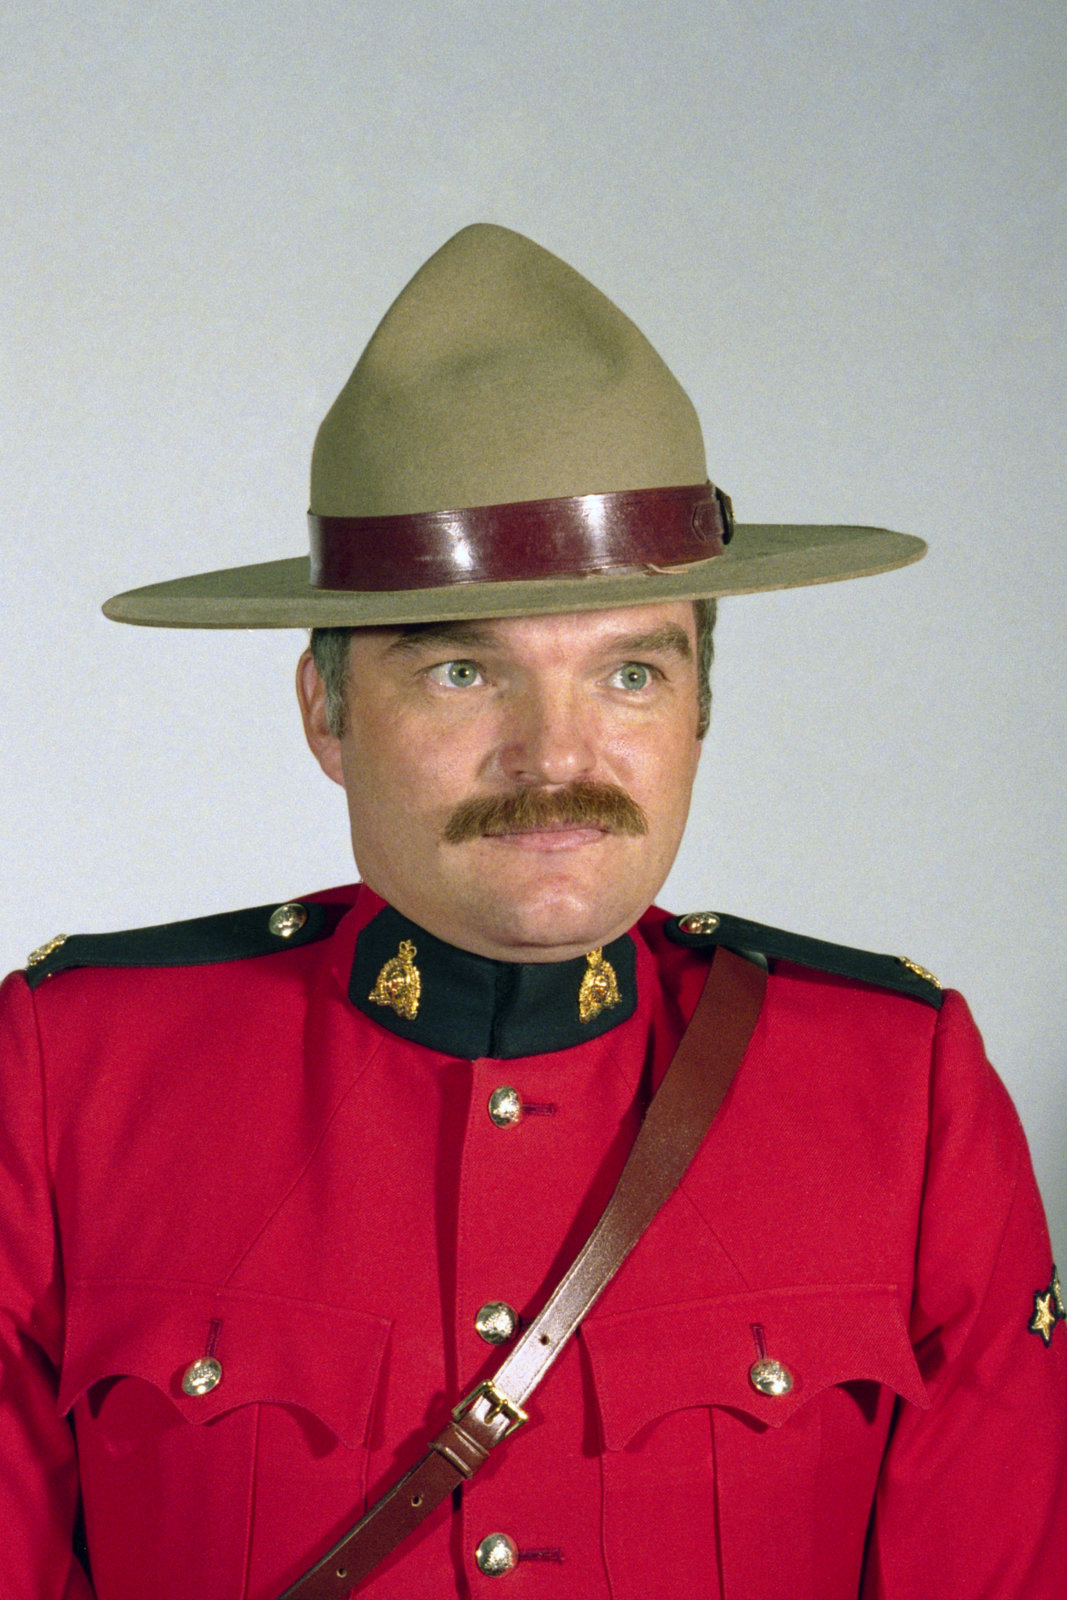 Sergeant Edwin Michael Mobley– © Her Majesty the Queen in Right of Canada as represented by the Royal Canadian Mounted Police